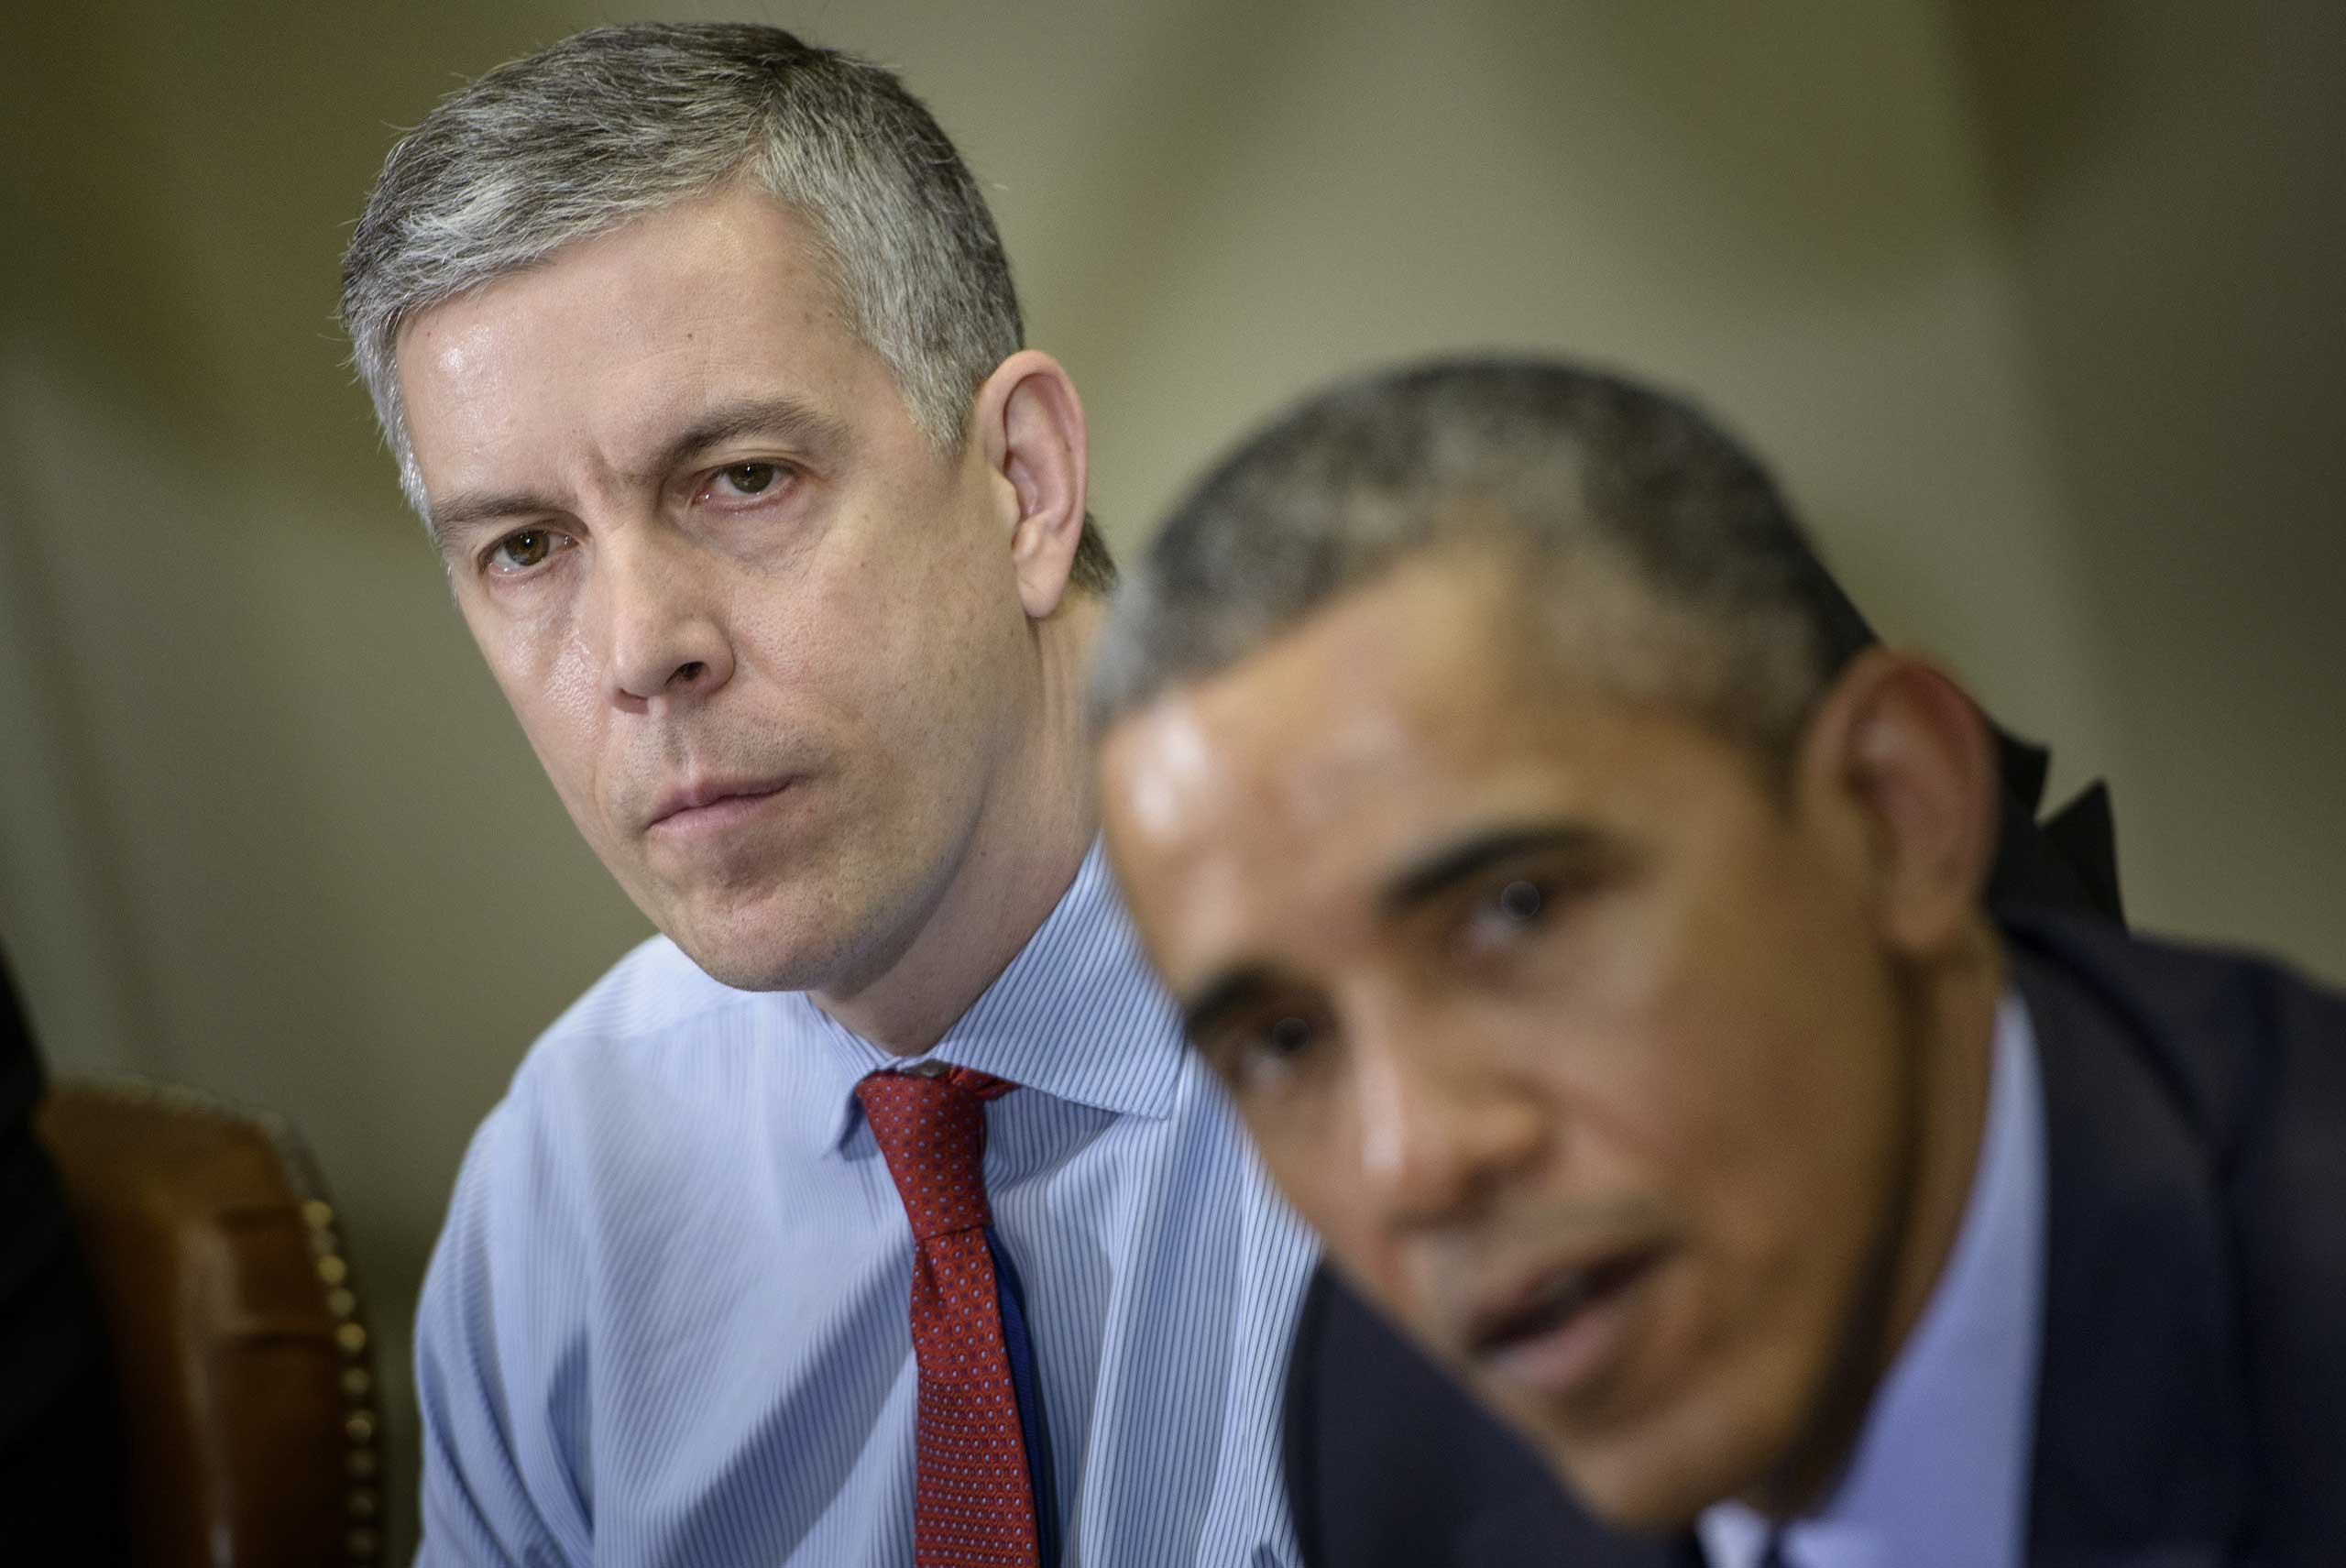 Secretary of Education Arne Duncan with President Obama at the White House, in March 2015.